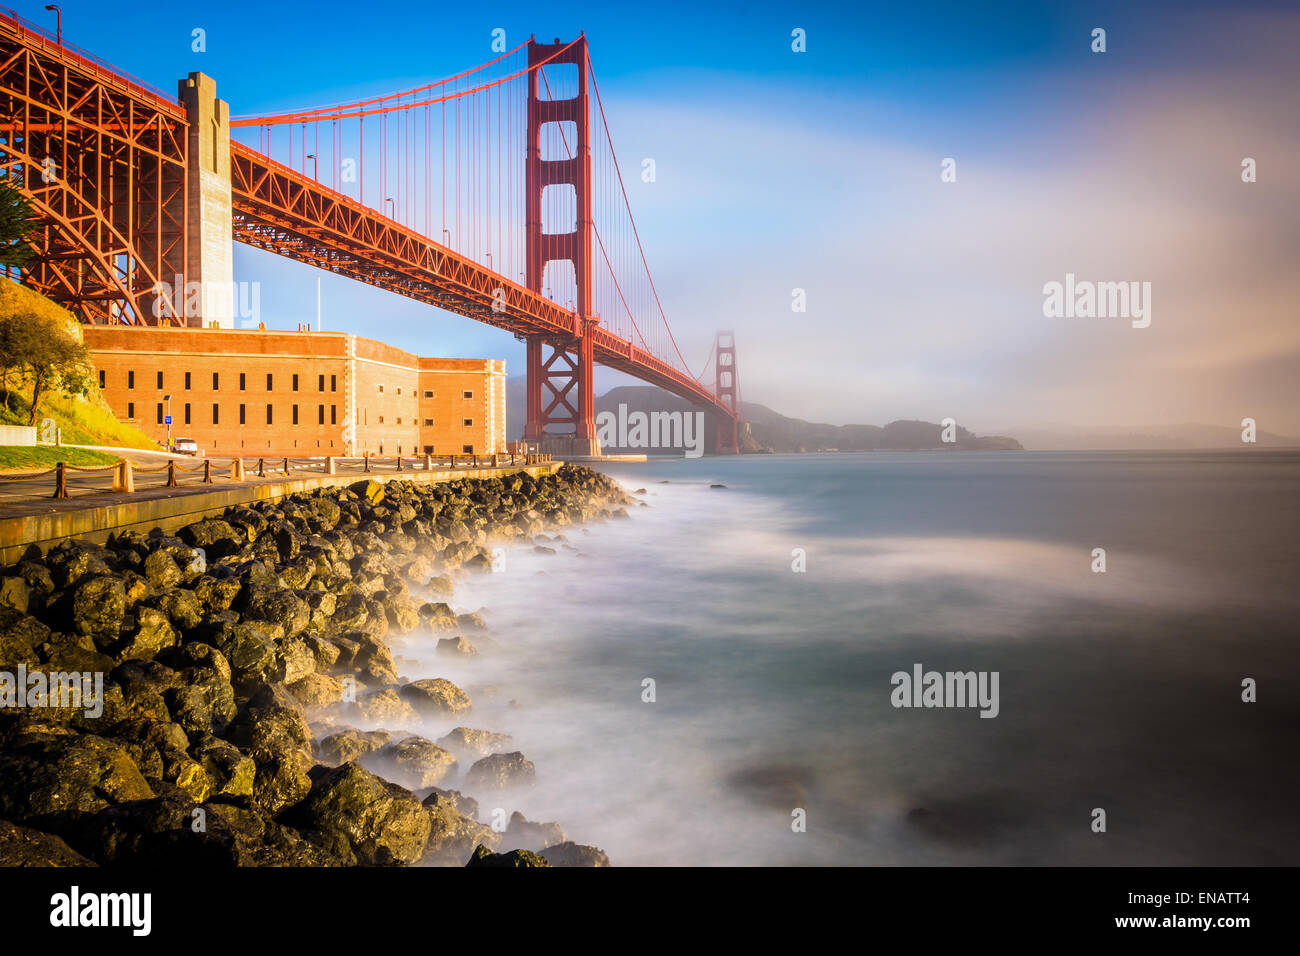 Long exposure of the Golden Gate Bridge, seen at sunrise from Fort Point, San Francisco, California. - Stock Image